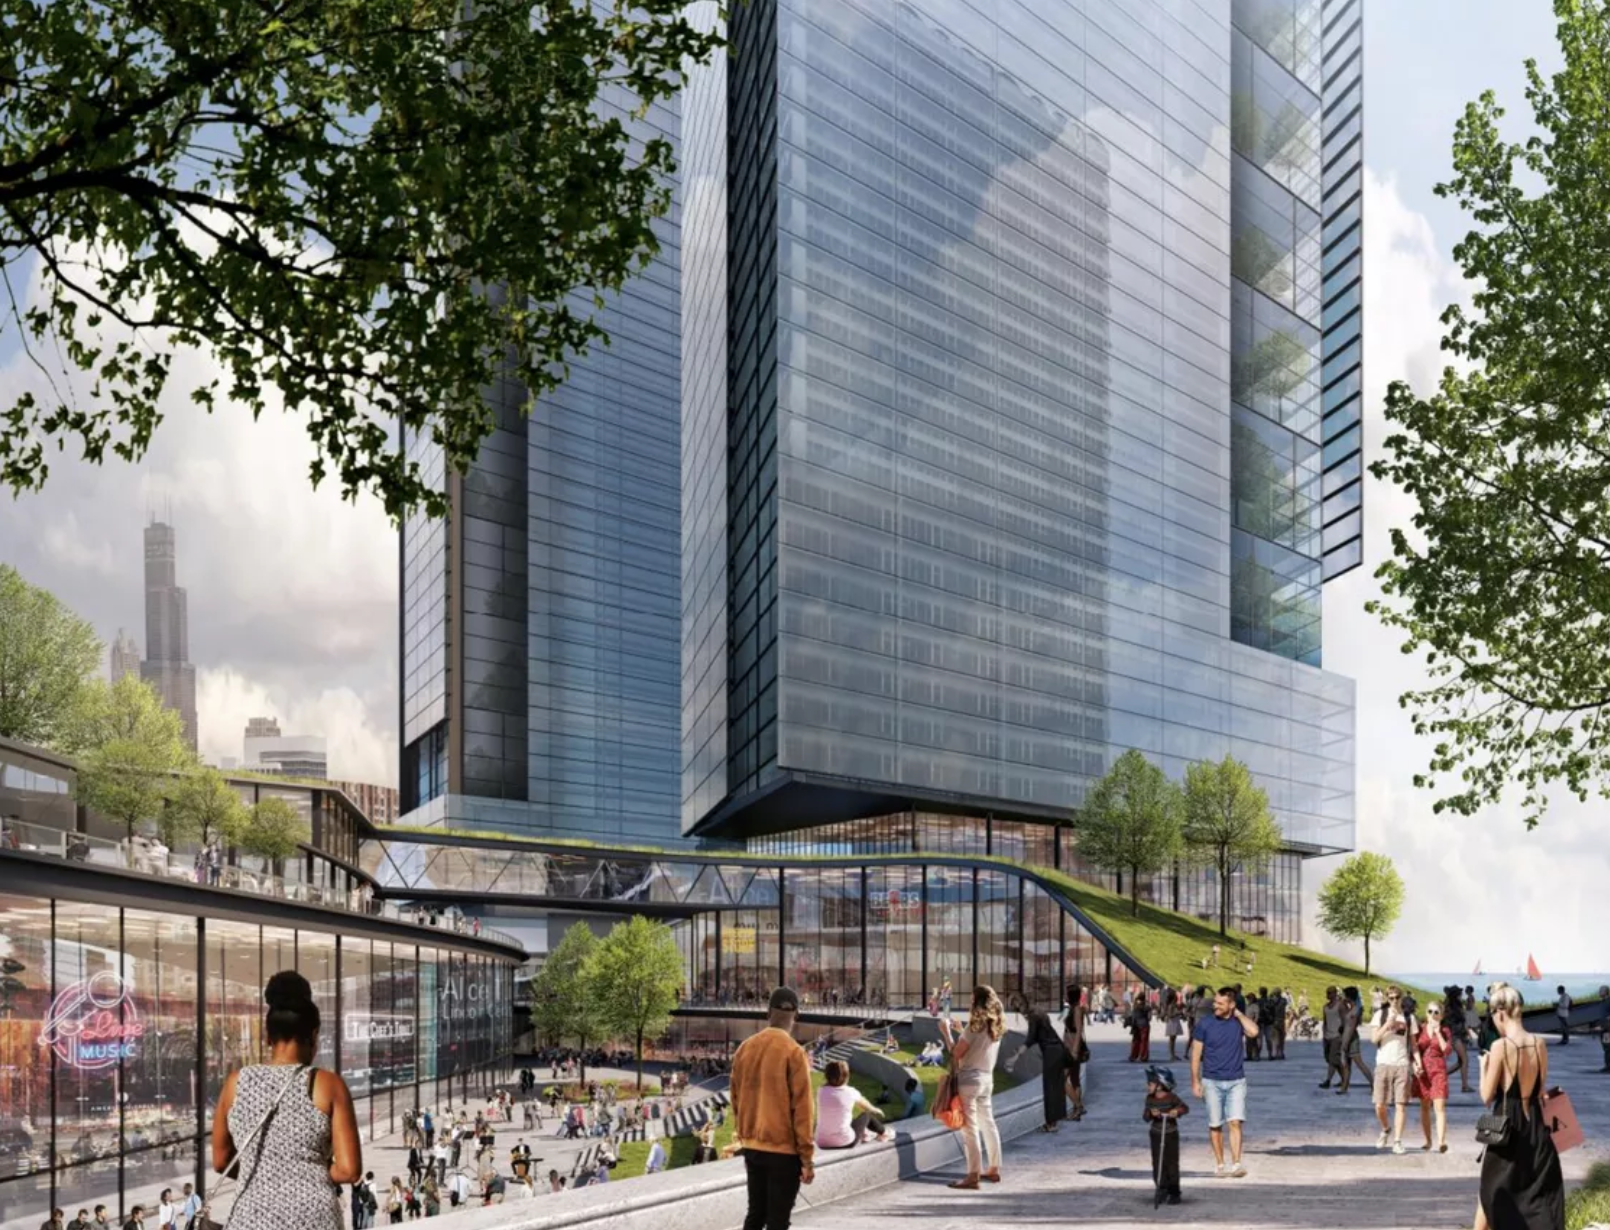 City planners move to bring additional oversight and transparency to megaprojects